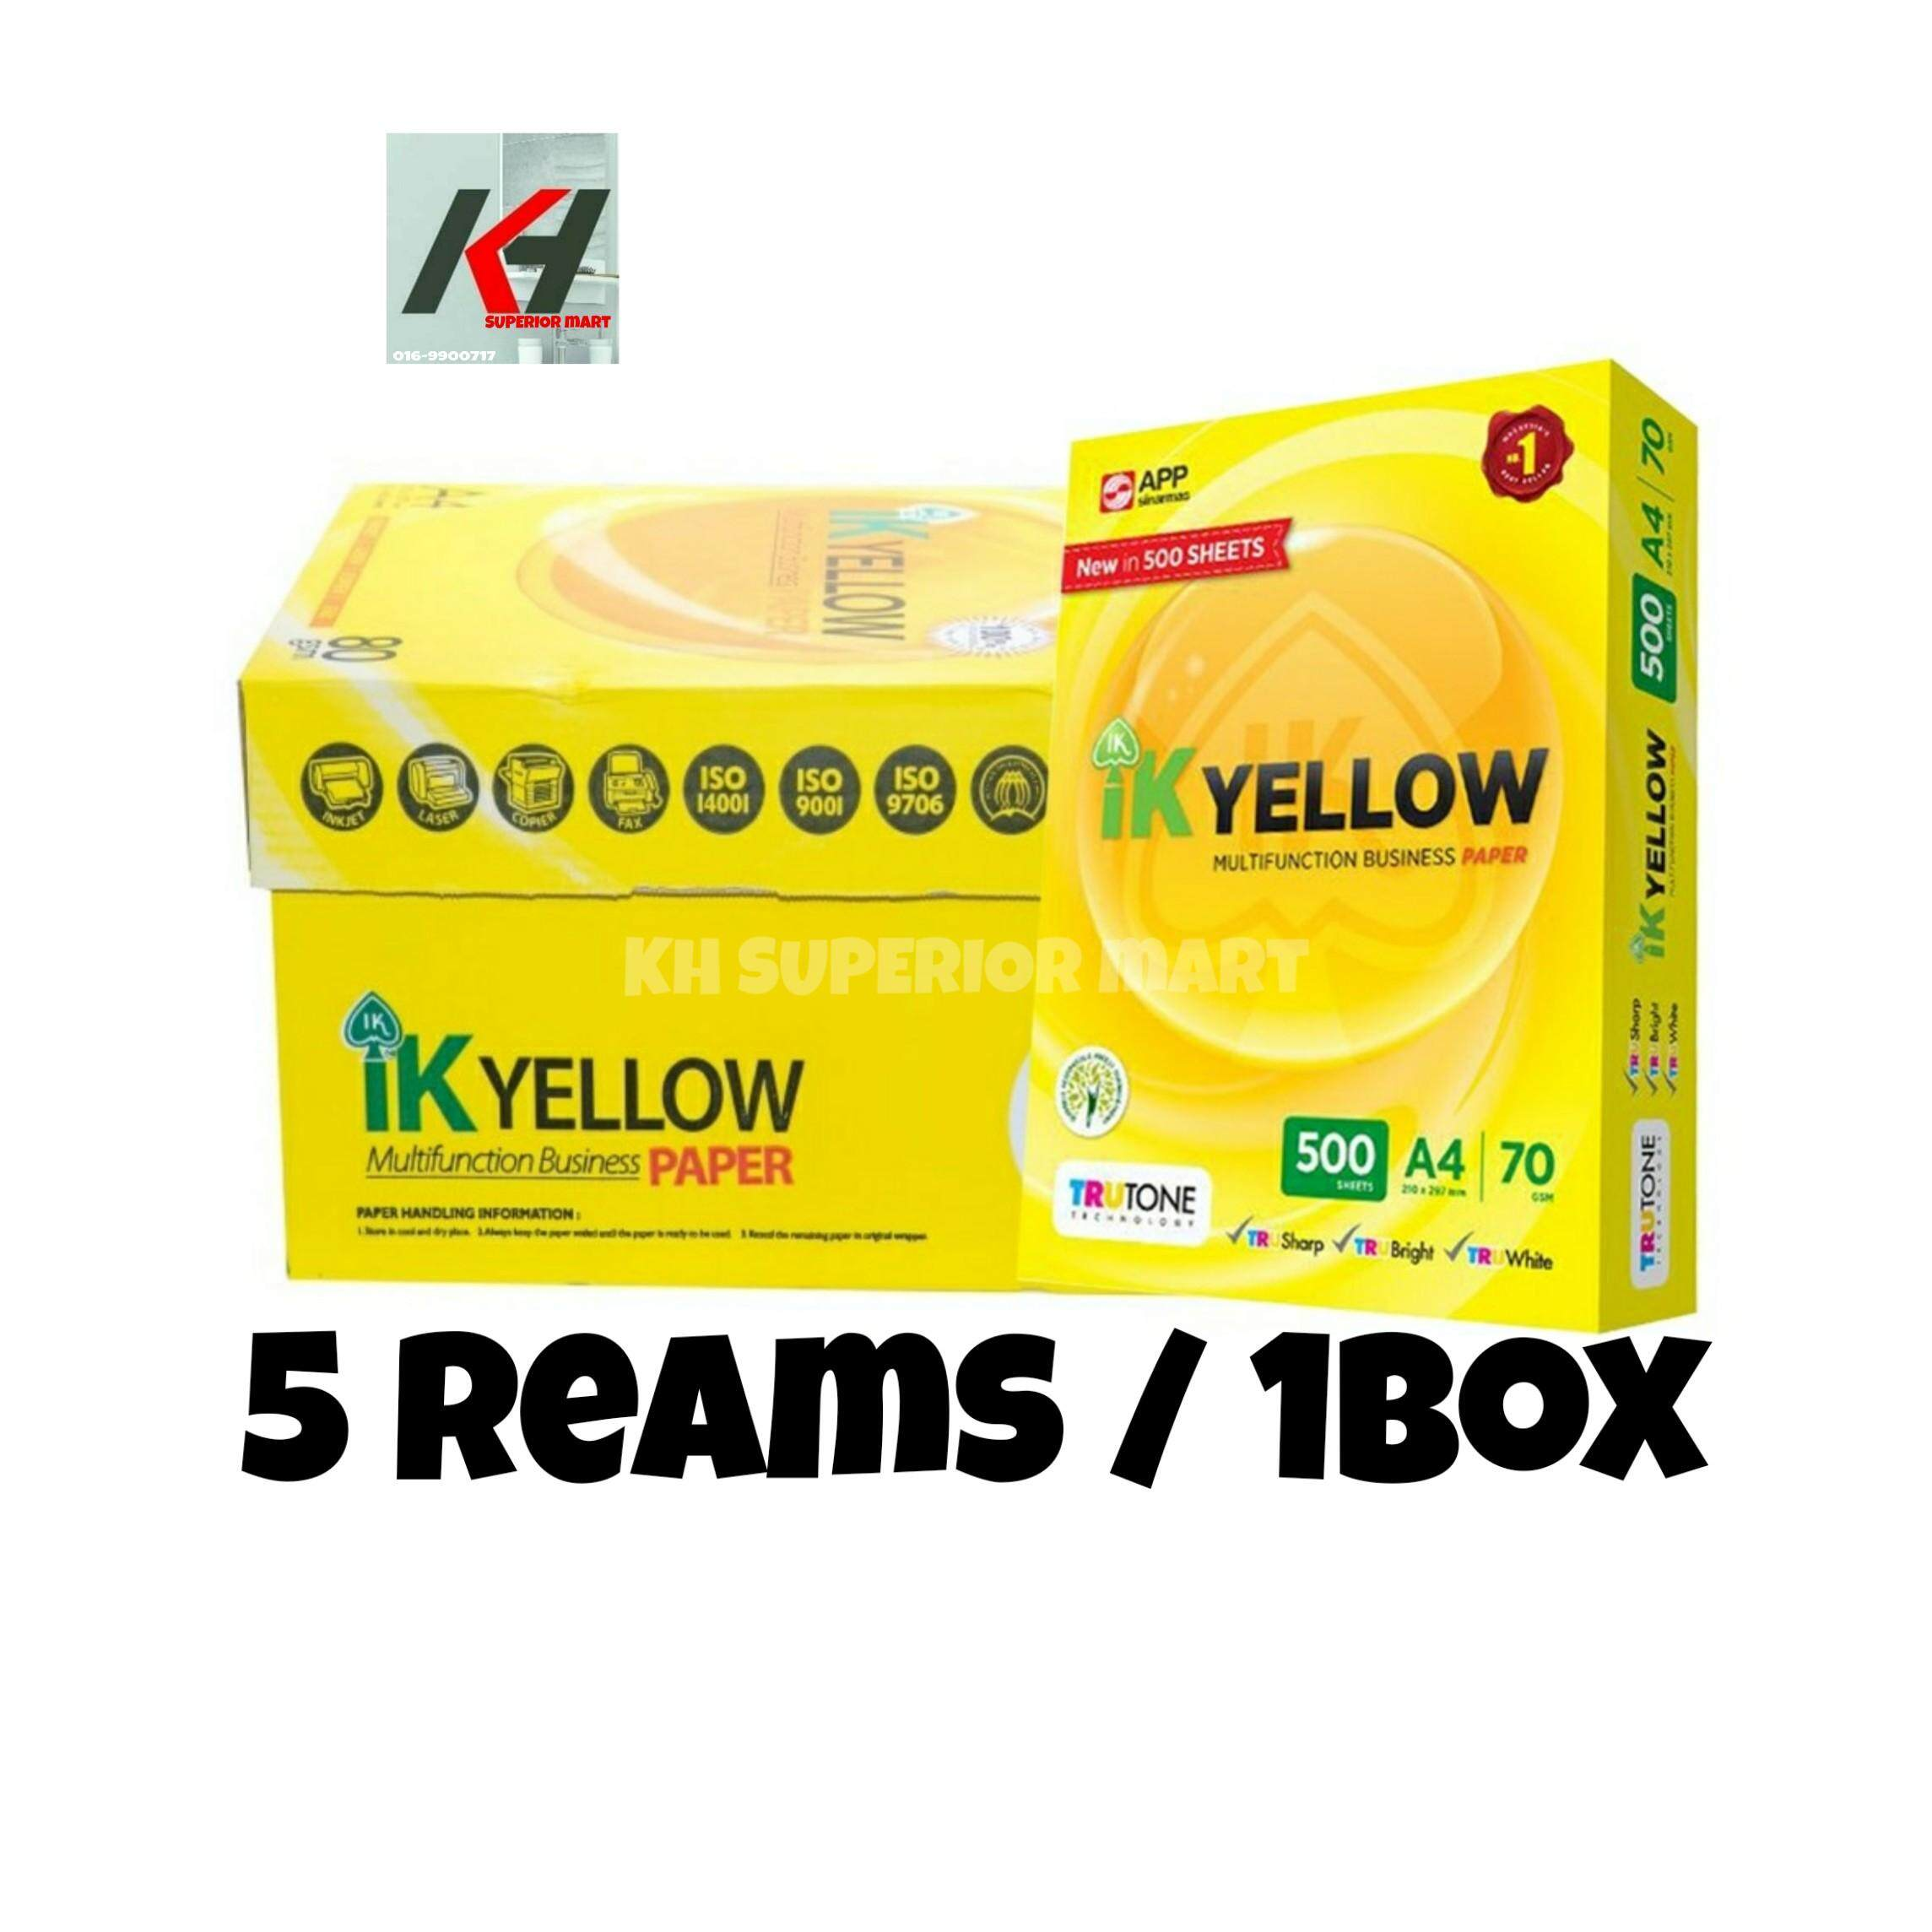 IK Yellow Multifunction Business Paper A4 70 gsm 500 Sheets 5REAMS/1BOX READY STOCK